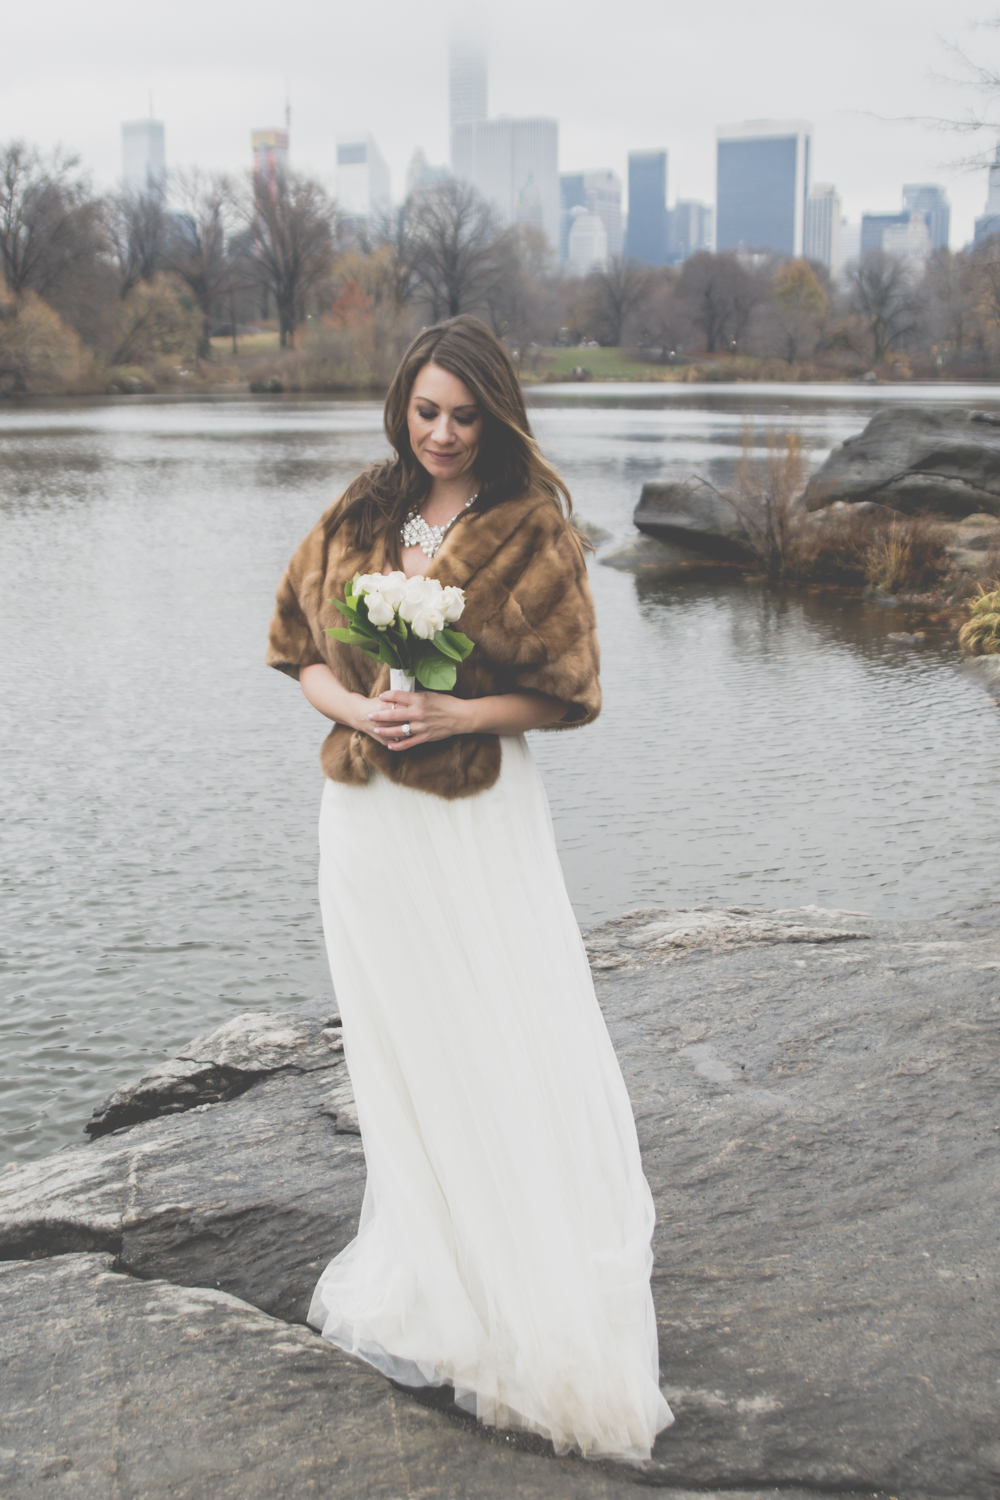 An Intimate Wintry Wedding I Image Copyright Alberto Lama Photography